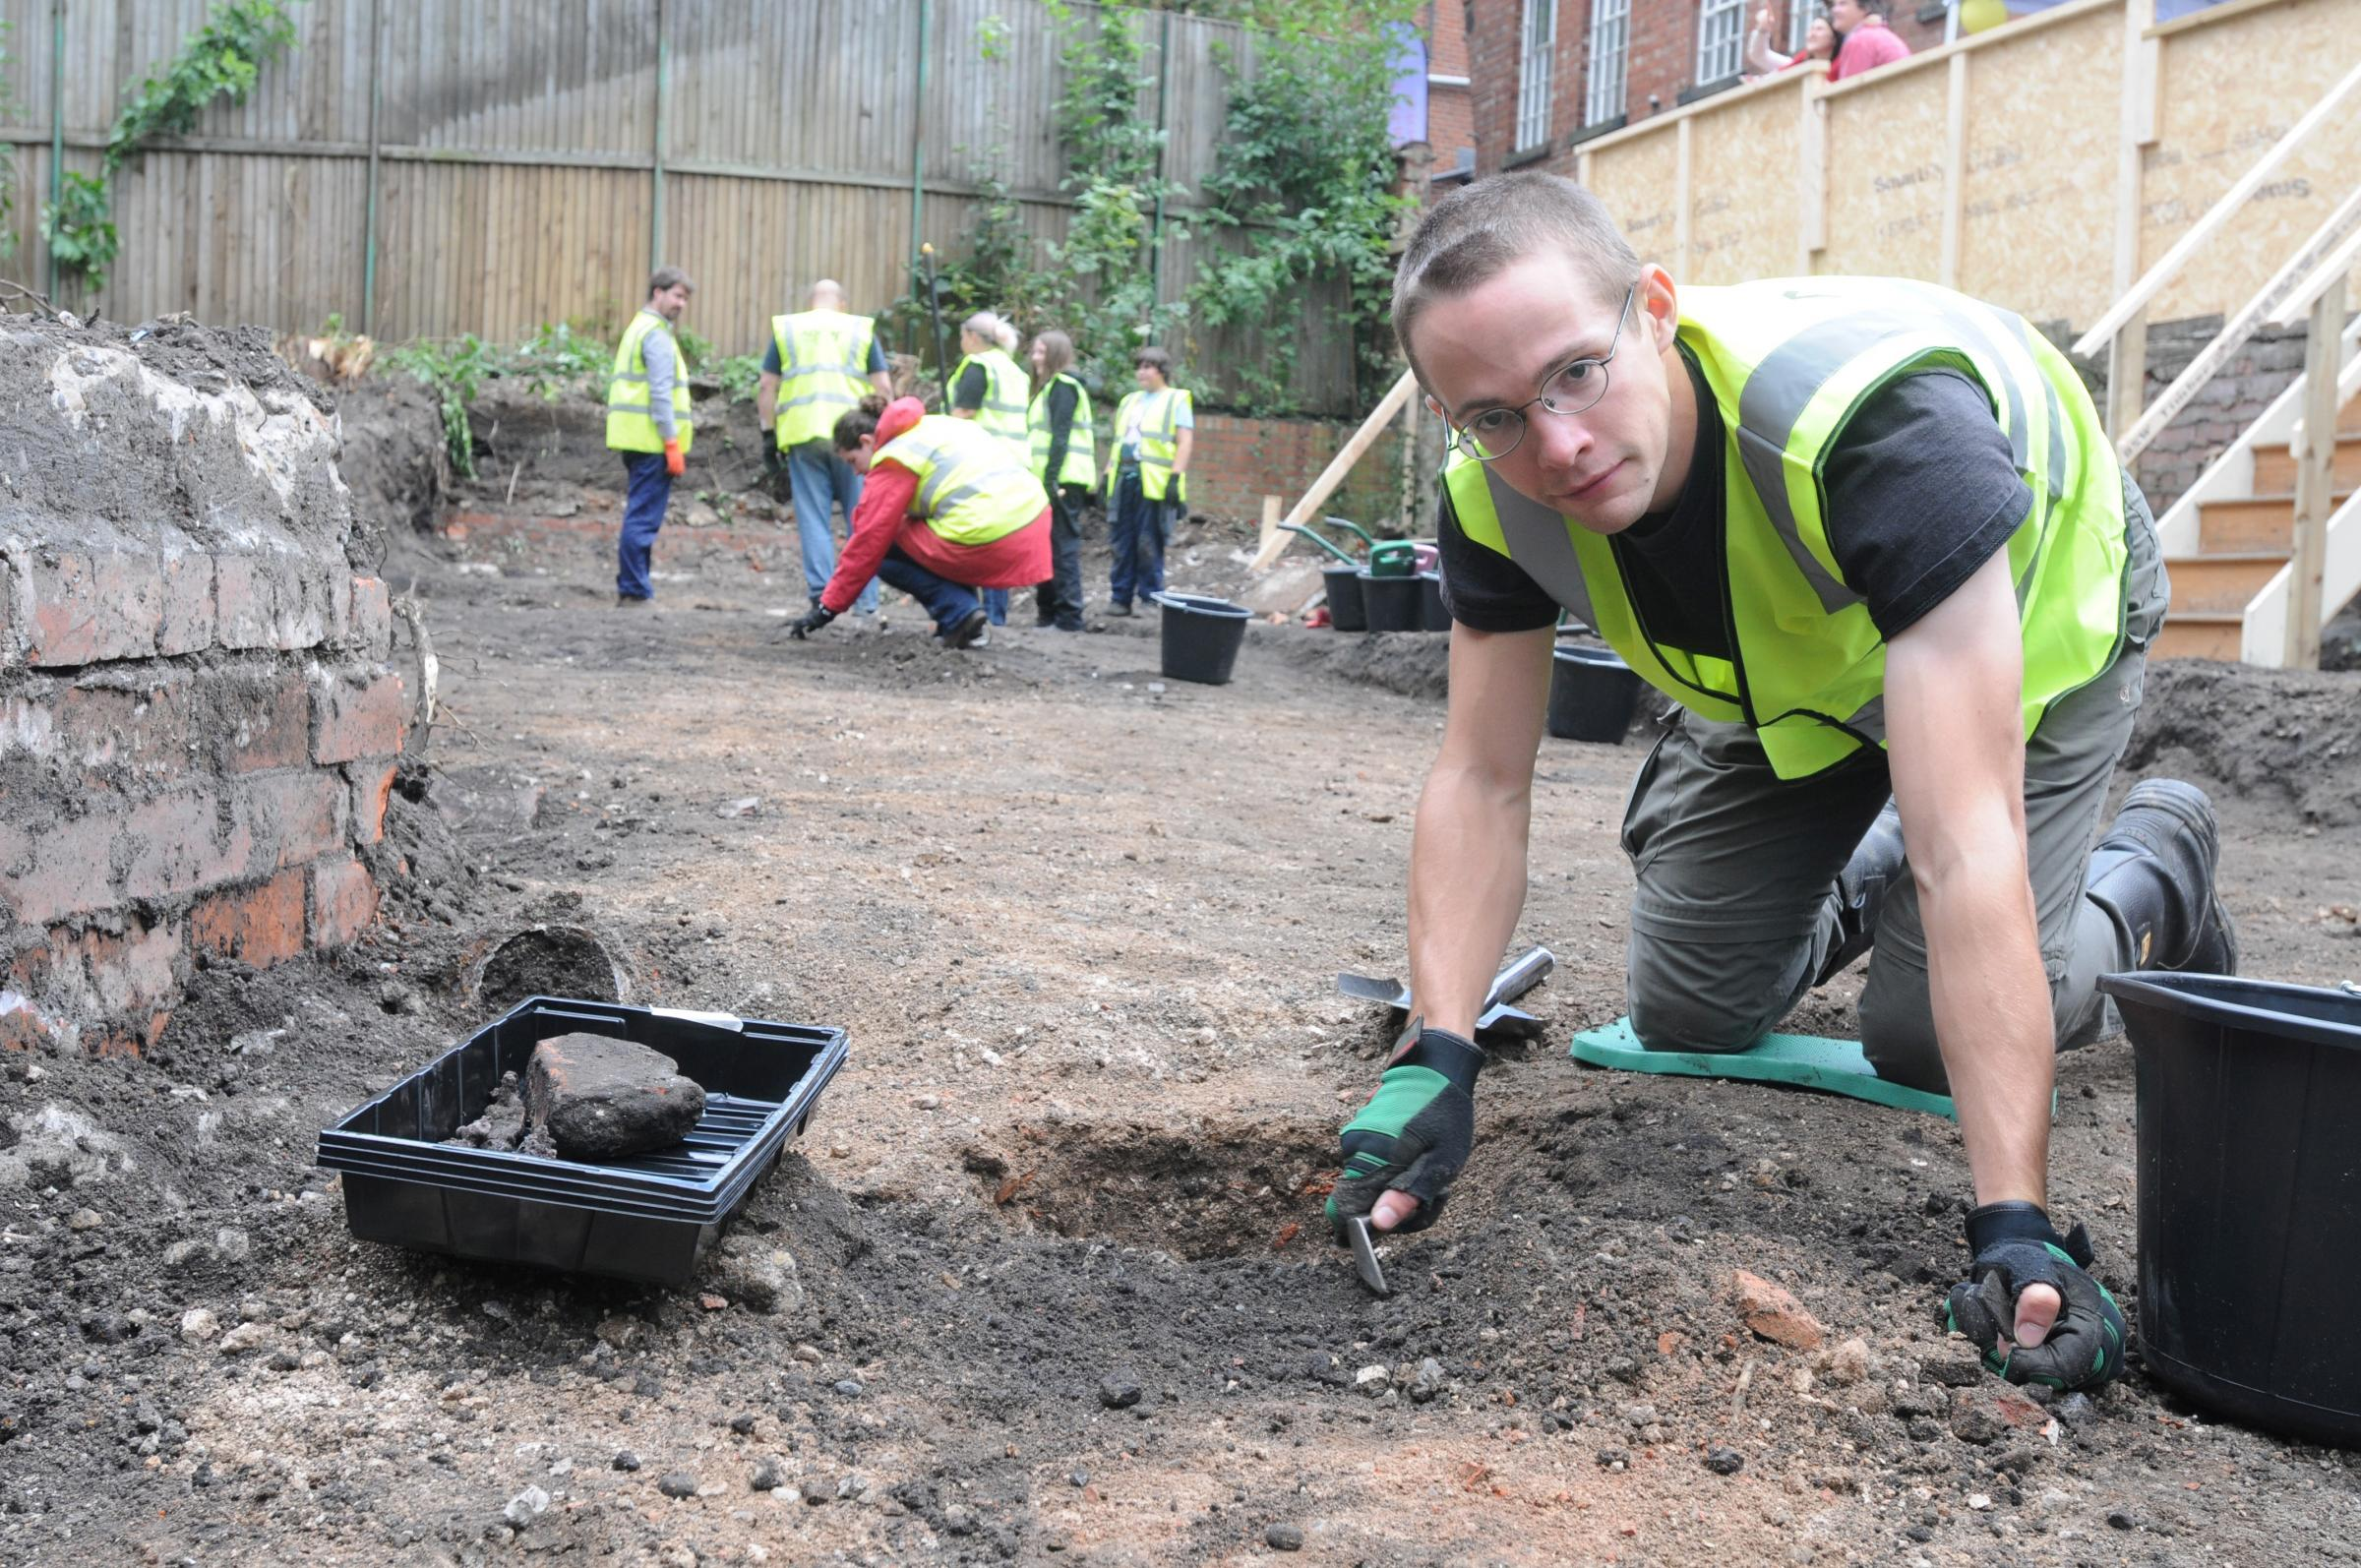 Archaeological dig next to Guildhall searches for royal clues